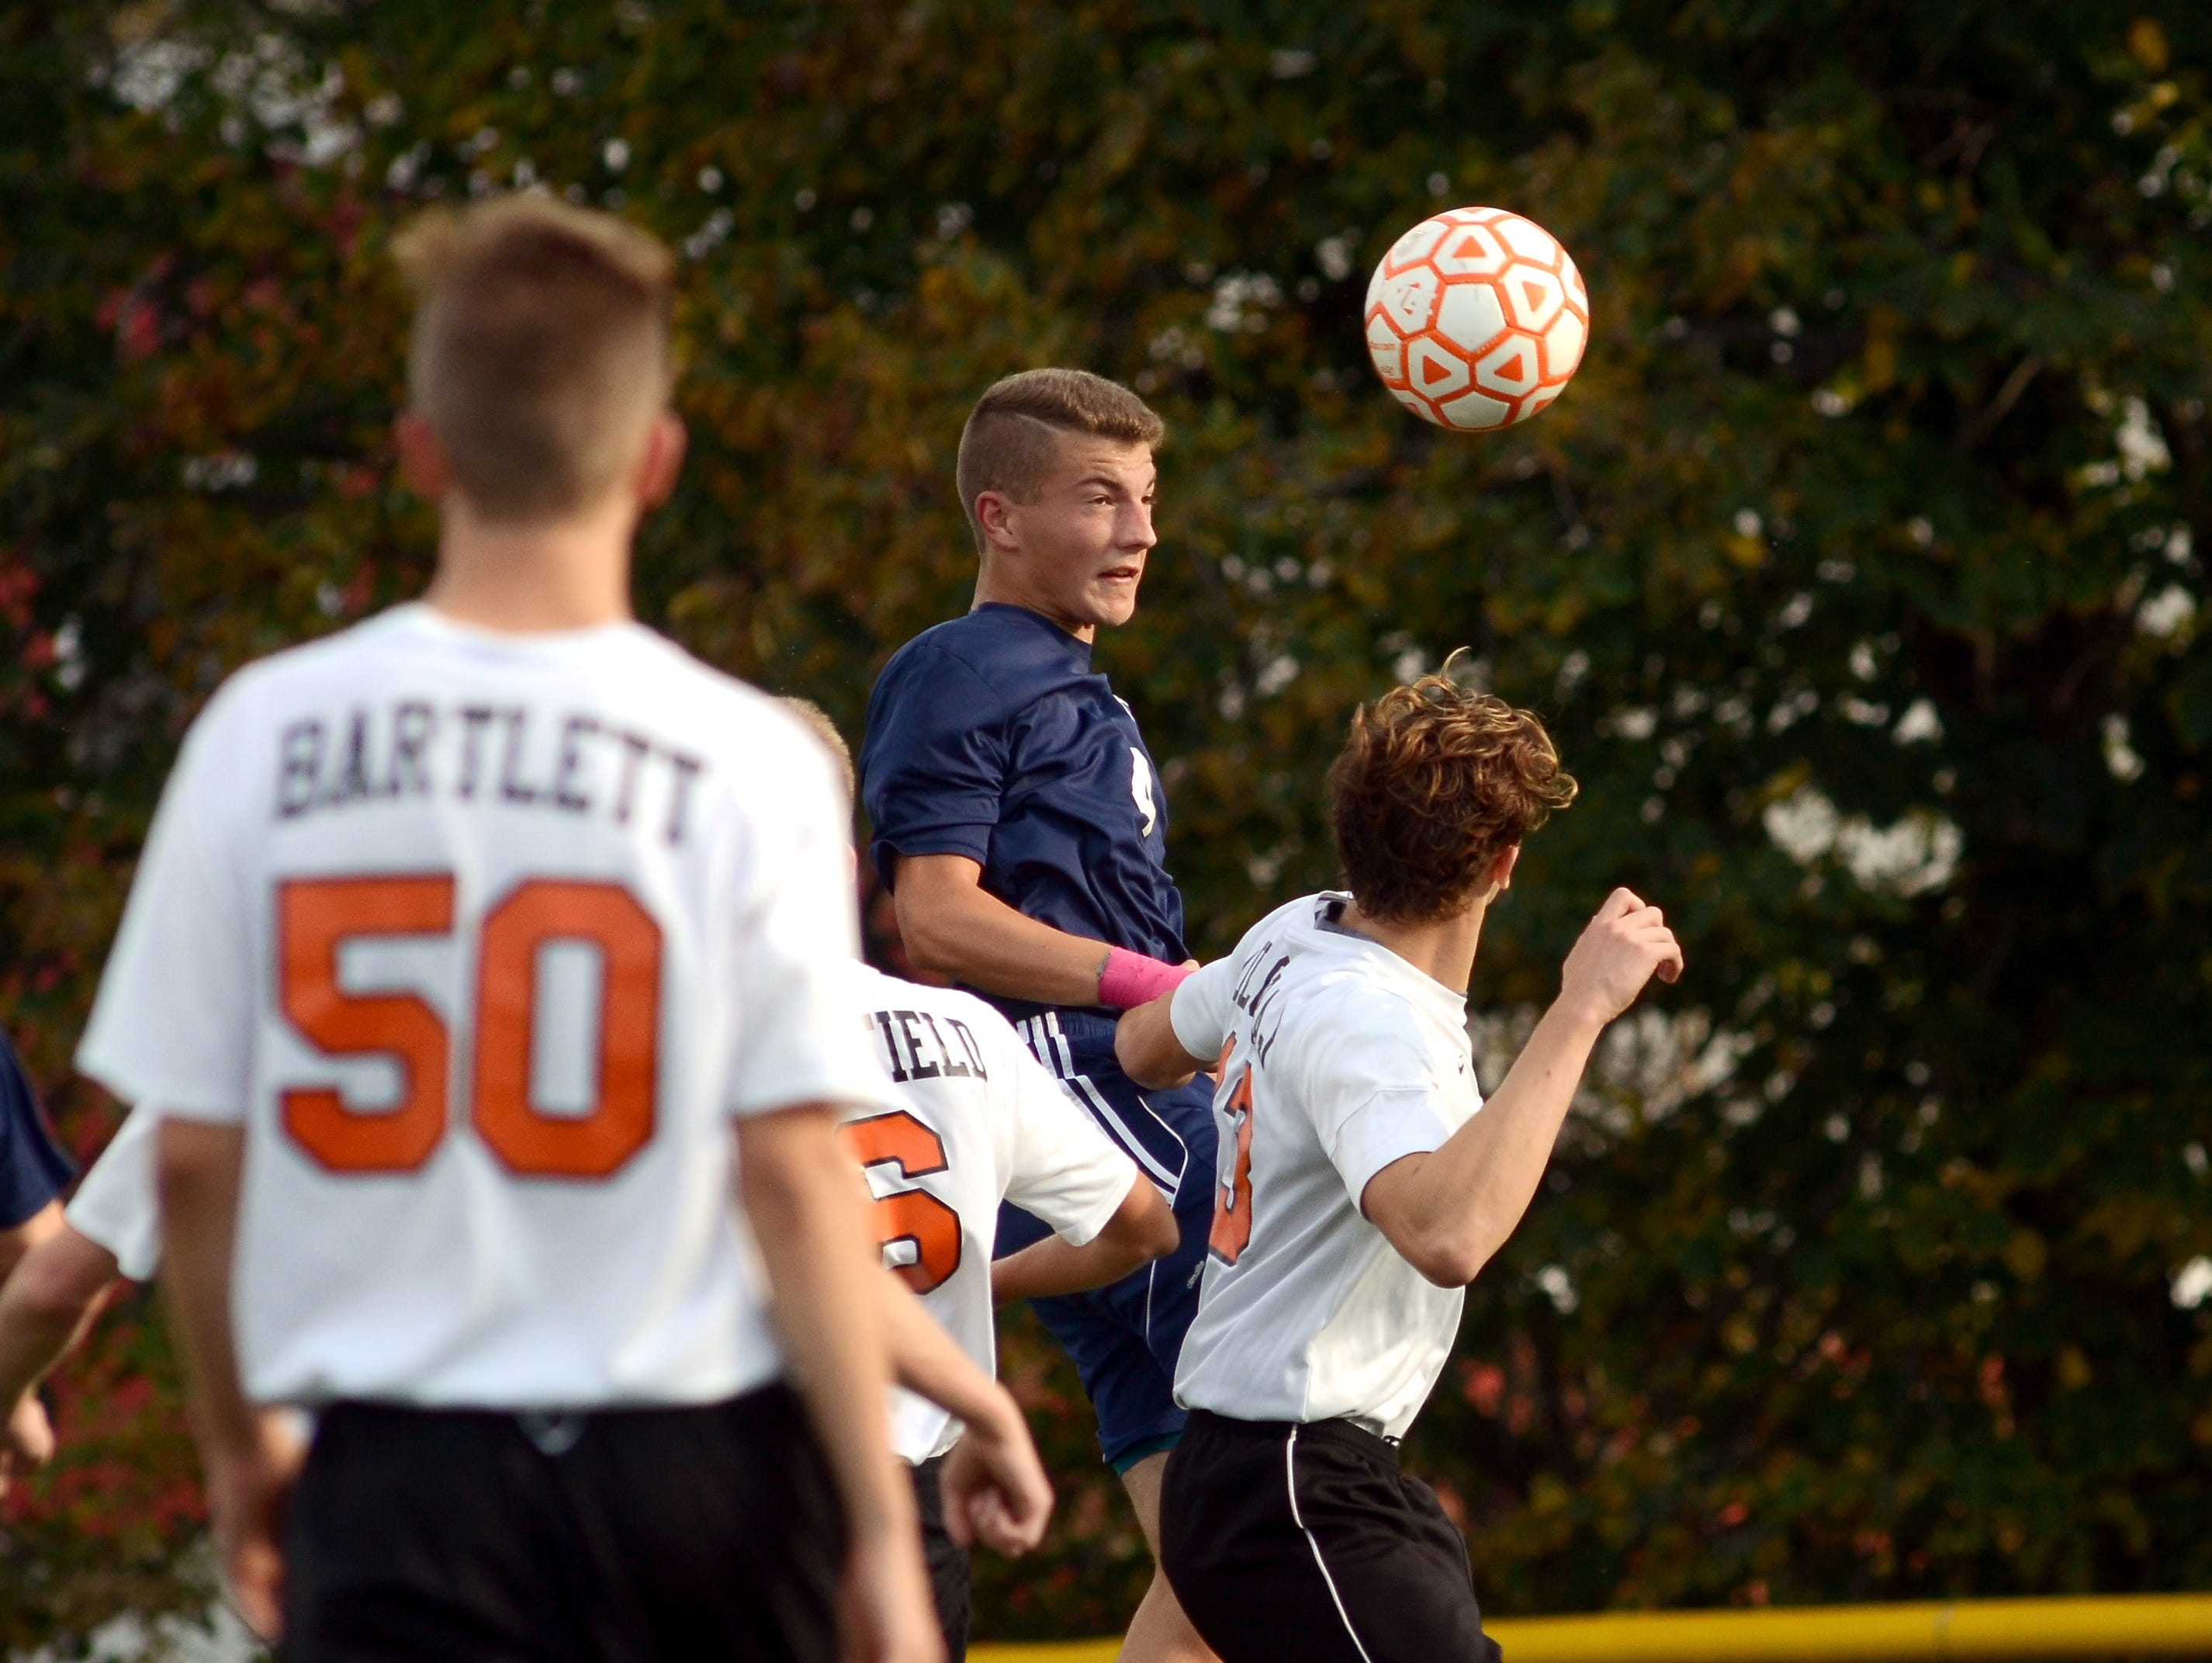 Blue Devils' Brandon Kunce heads the ball Monday, Oct. 12 during high school soccer action at Almont.